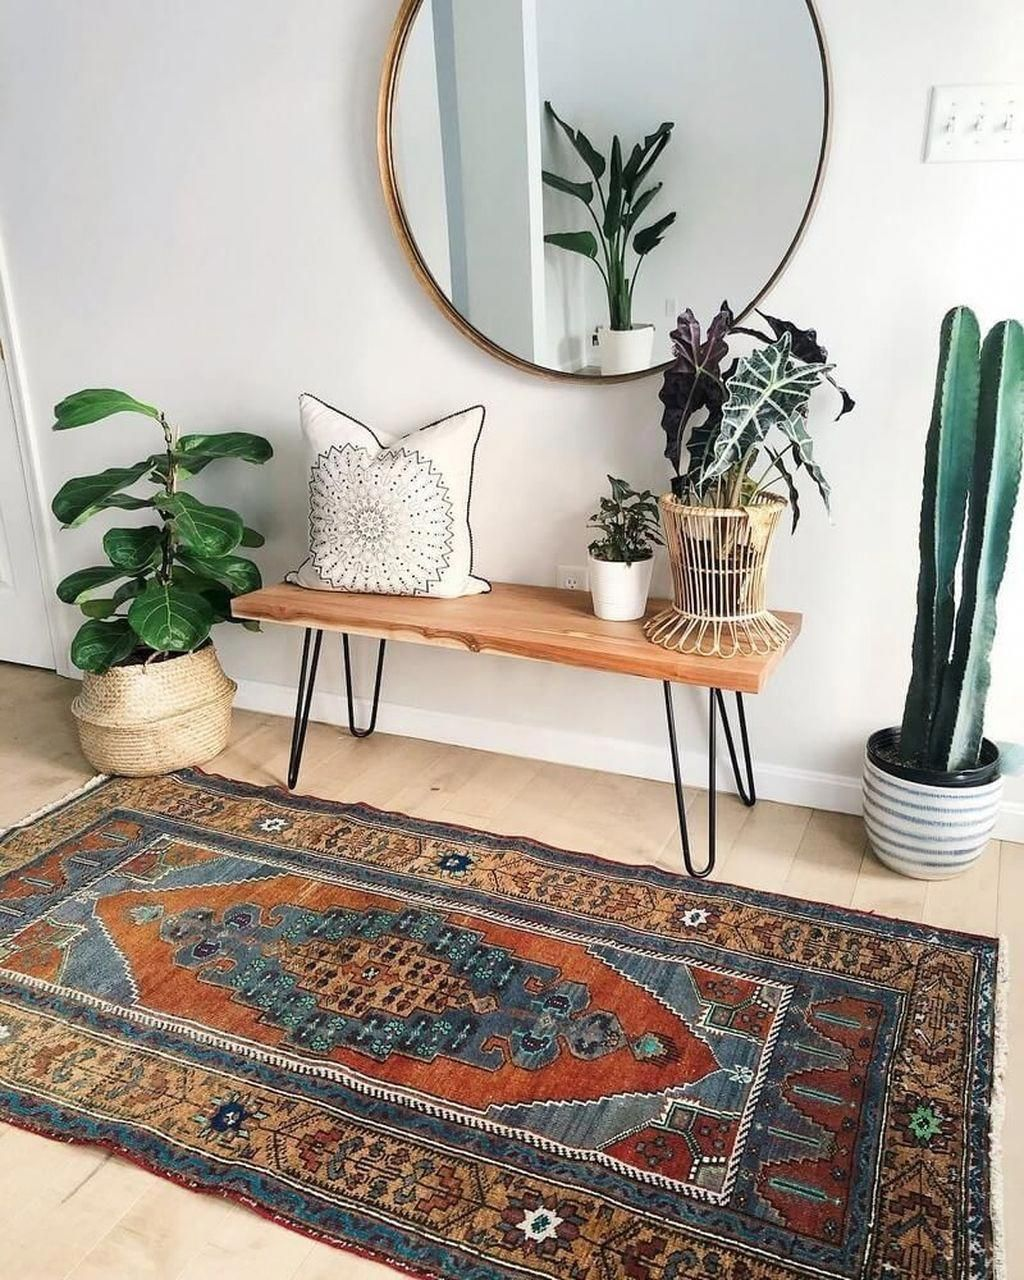 19 The Best Boho Style Home Decor in 19  Home decor, Decor